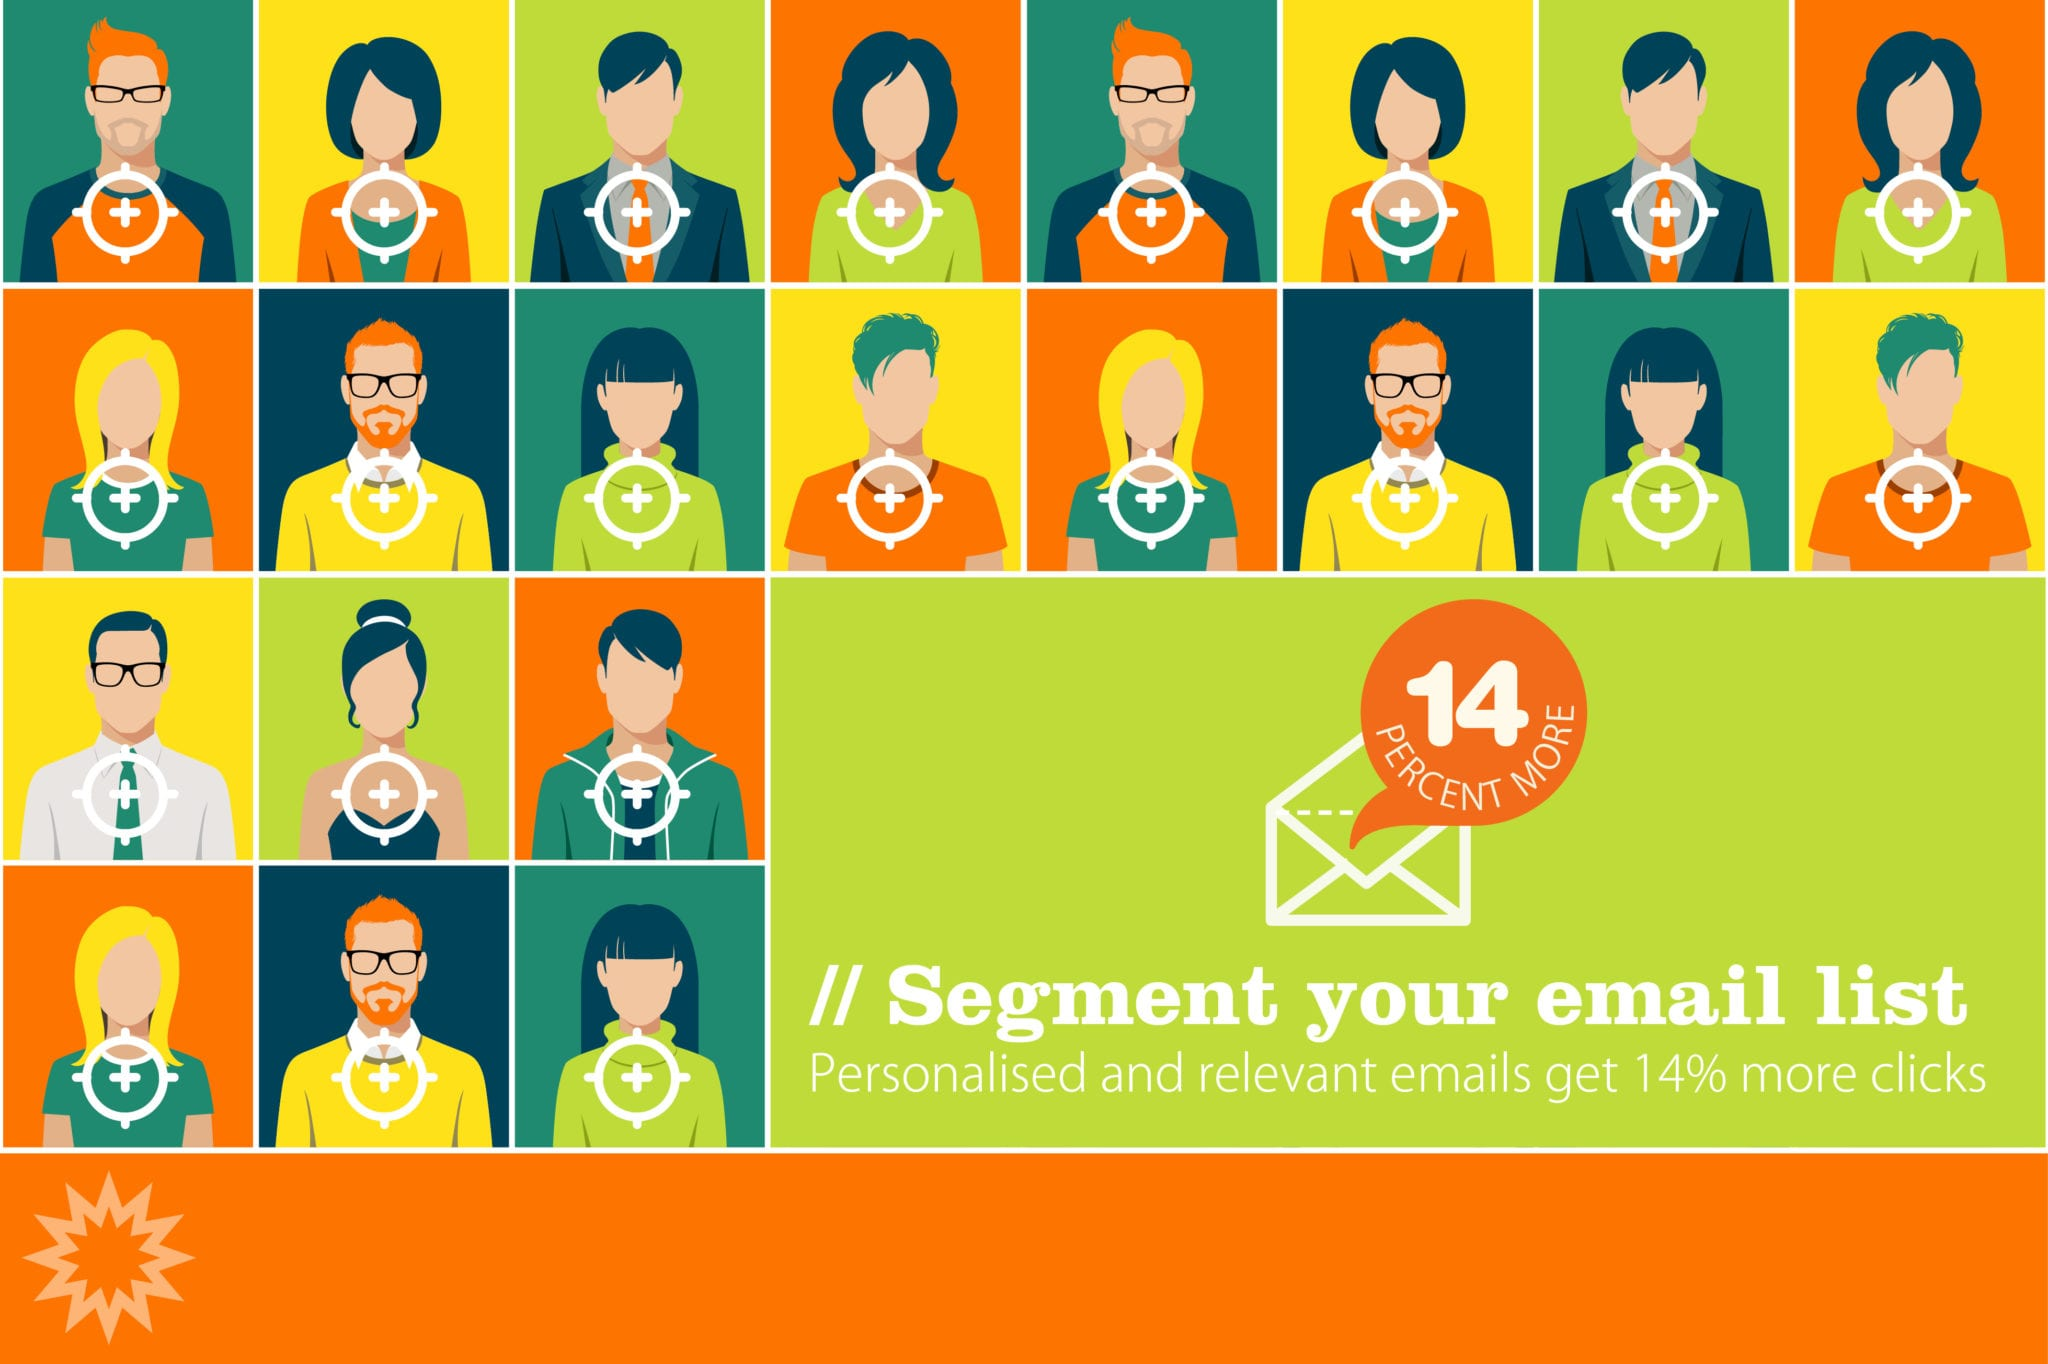 Email marketing segmentation